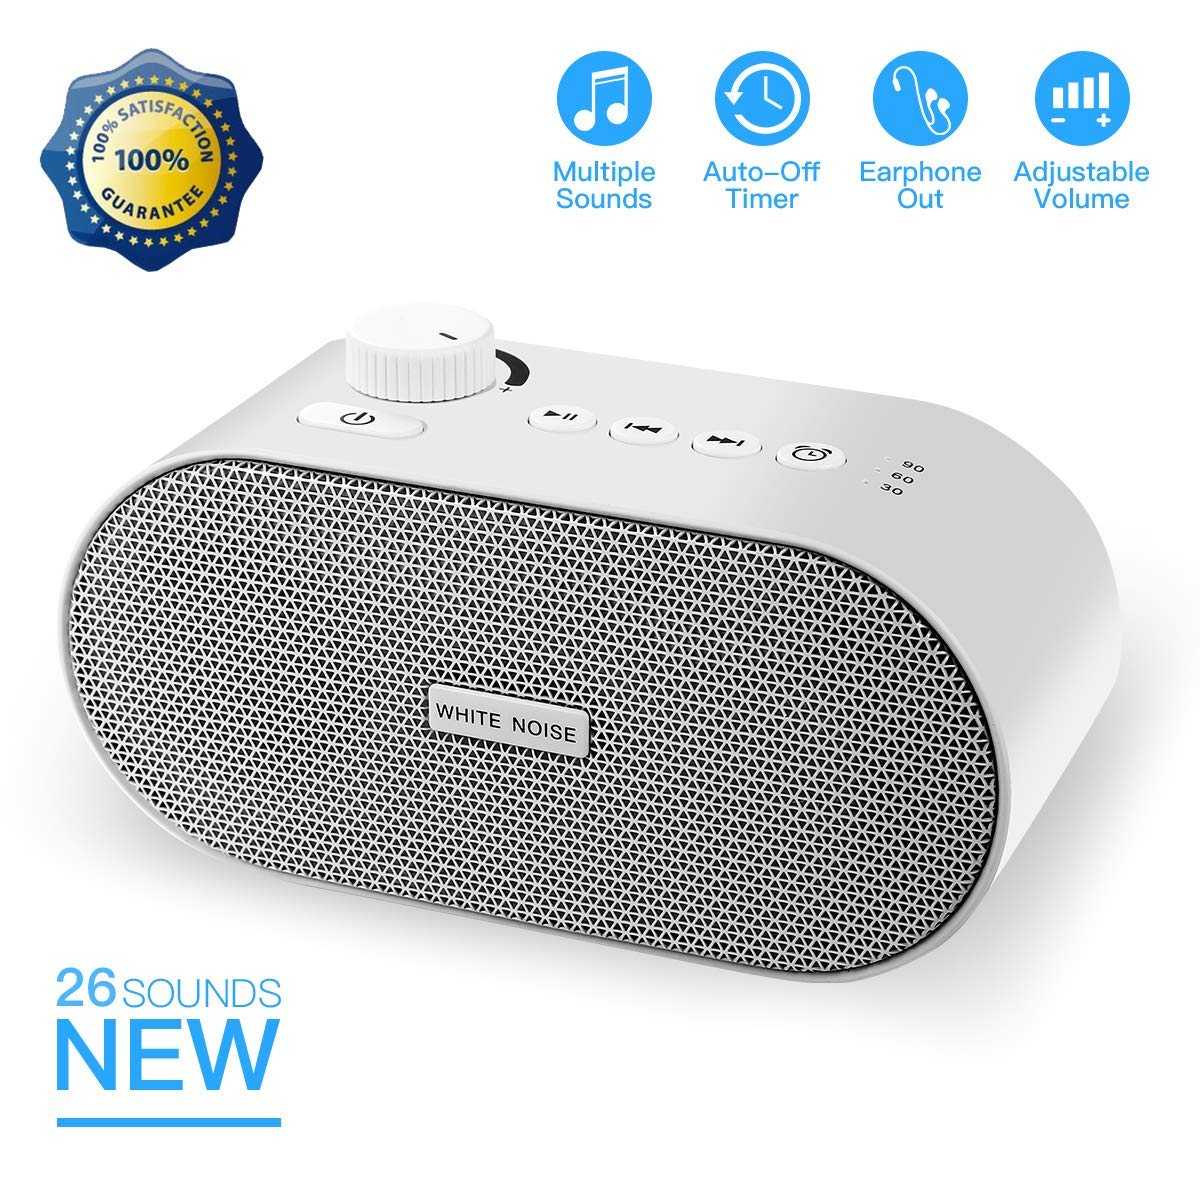 White Noise Machine, Portable Sleep Sound Therapy Machine with 26 Non-looping Soothing Sounds, USB Output Charger, Travel Sleep Auto-Off Timer for Baby Kids Adults (White)... by Mai jili (Image #1)